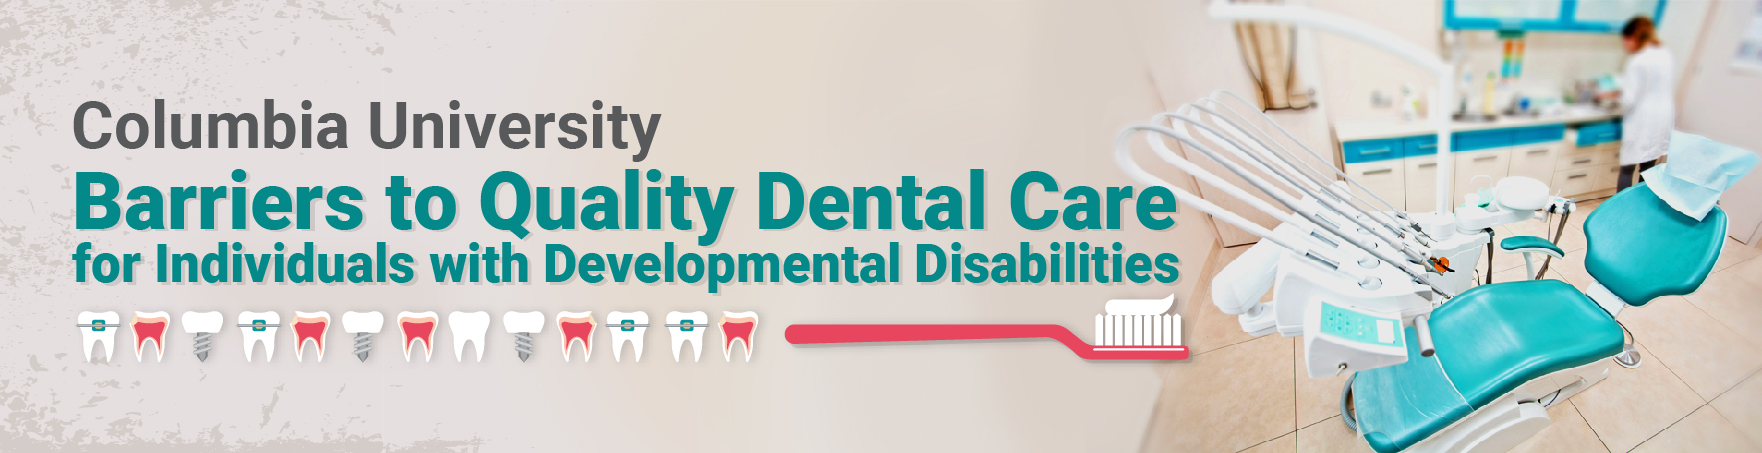 COLUMBIA UNIVERSITY: ADDRESSING BARRIERS TO QUALITY DENTAL CARE FOR INDIVIDUALS WITH DEVELOPMENTAL DISABILITIES IN NEW JERSEY